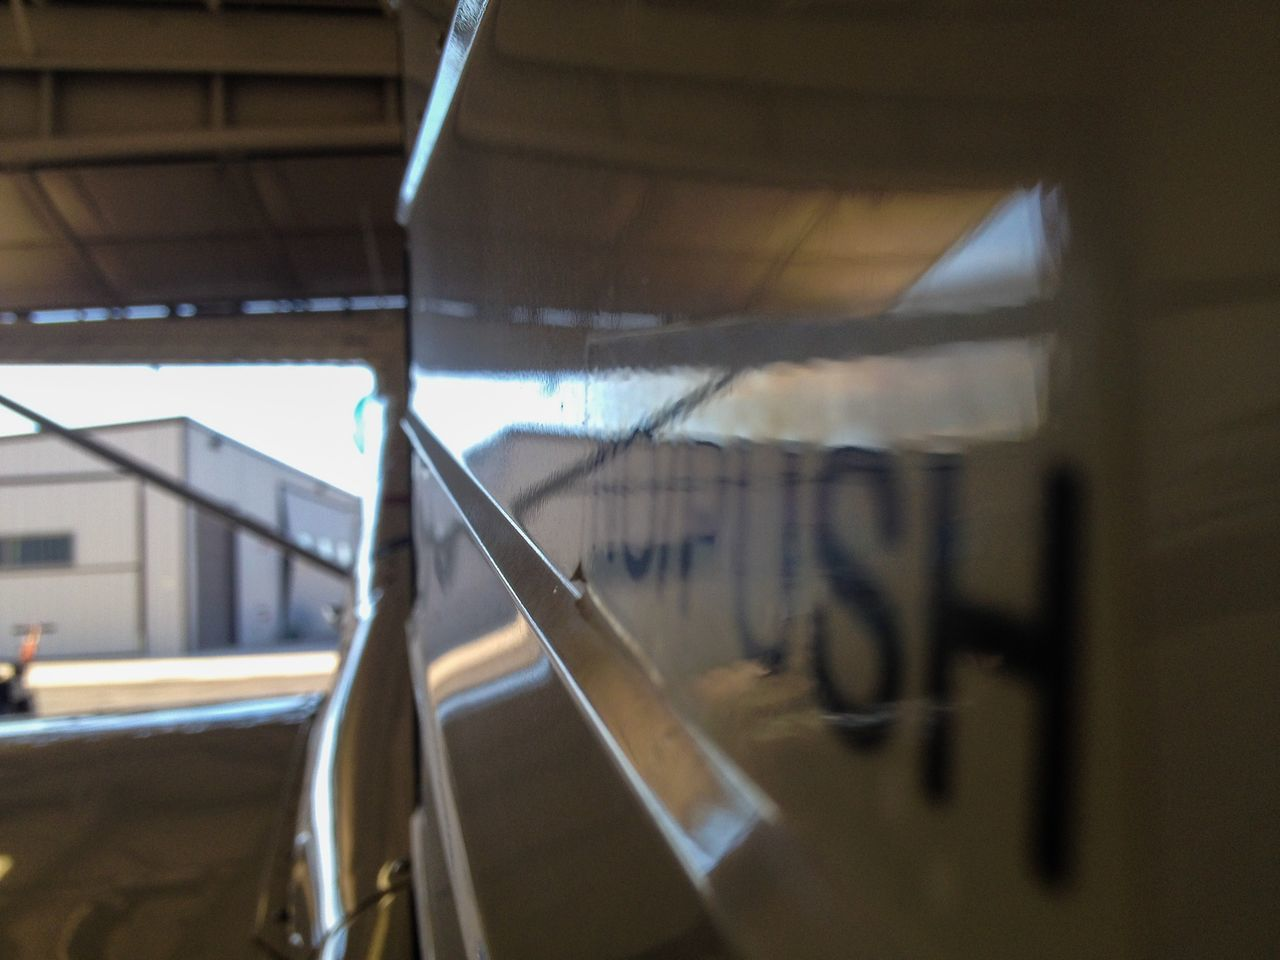 Sign on the tail of an Aircraft warning you not to Push it. Reflection Reflections Hangar